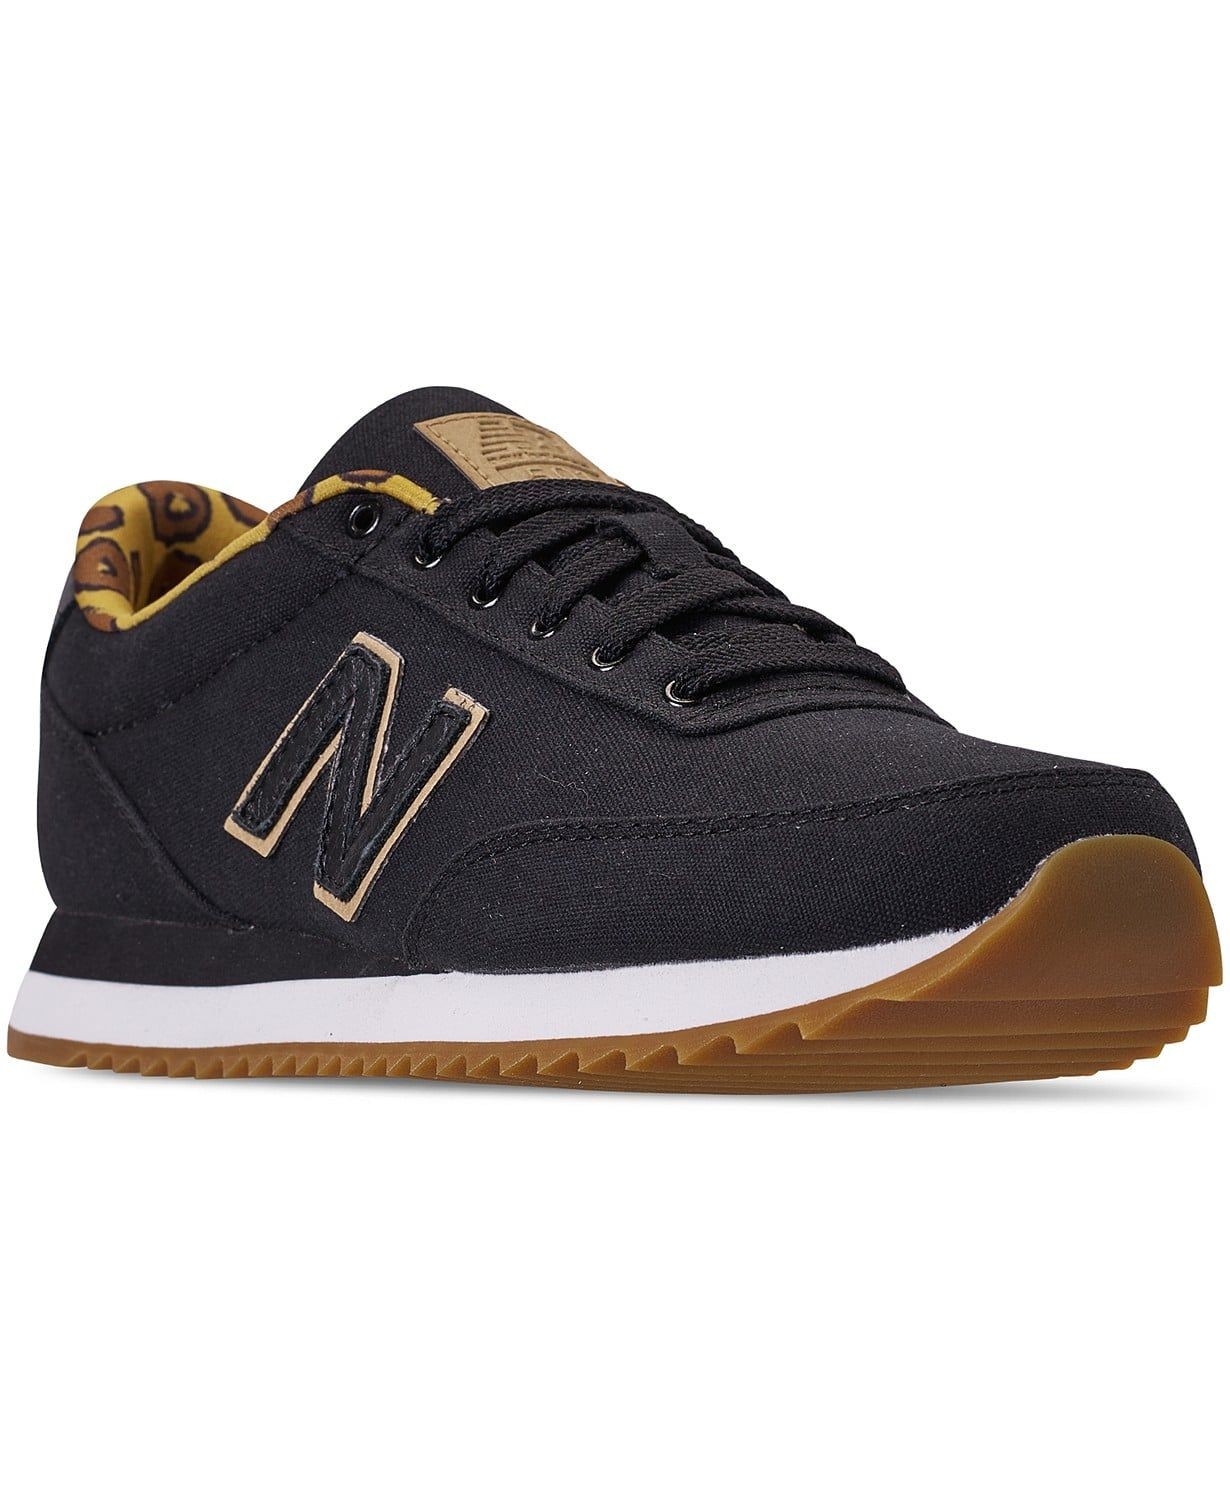 New balance 501 leopard sneakers with images leopard